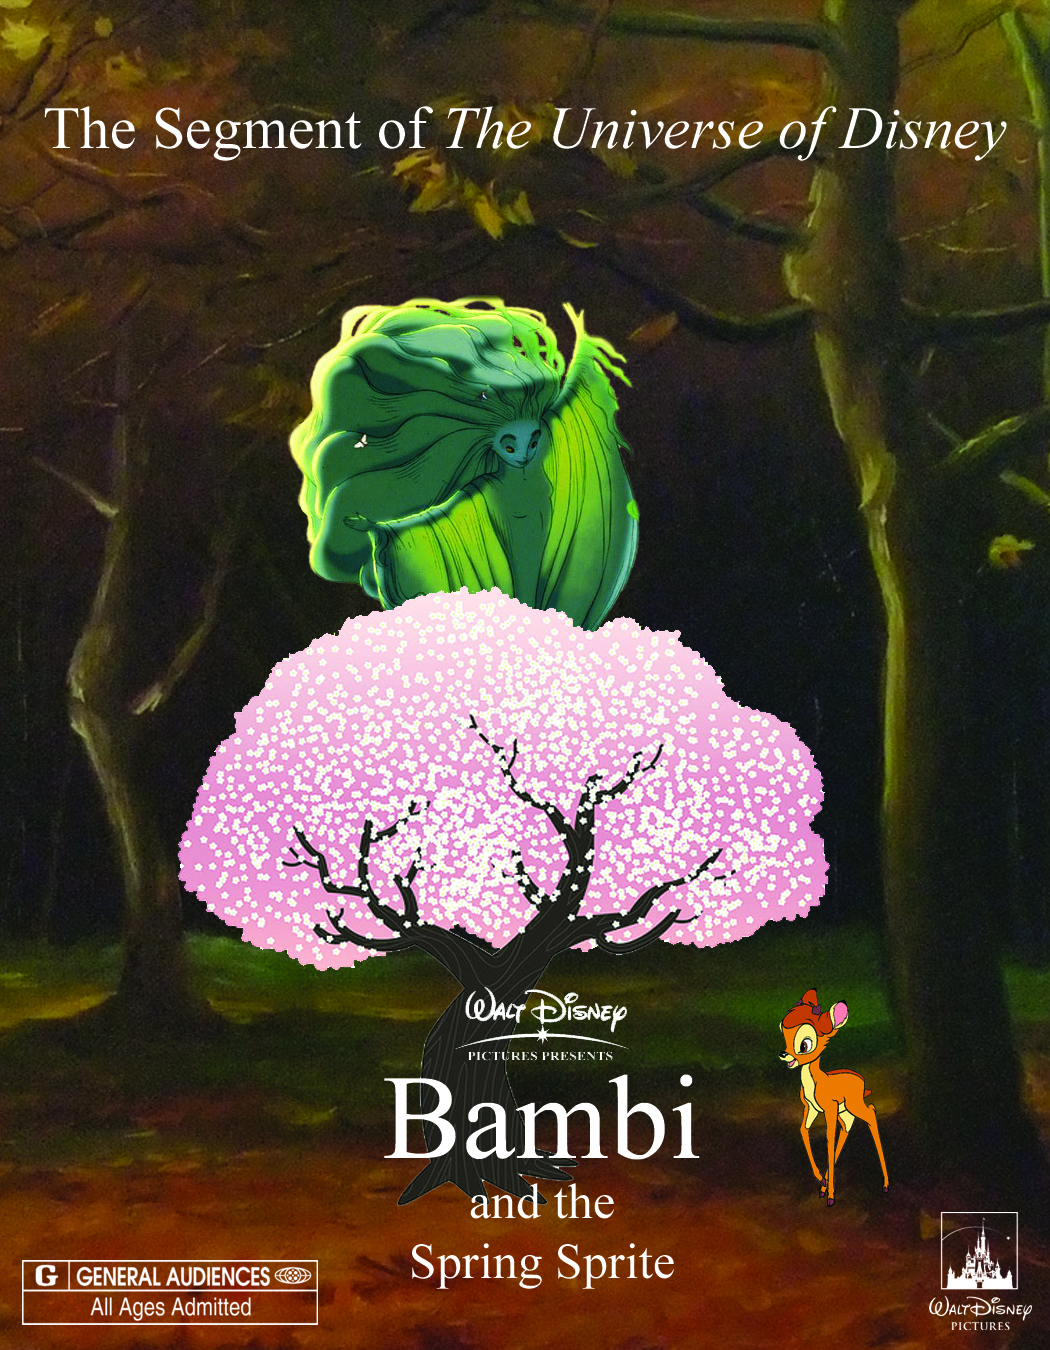 Bambi and the Spring Sprite